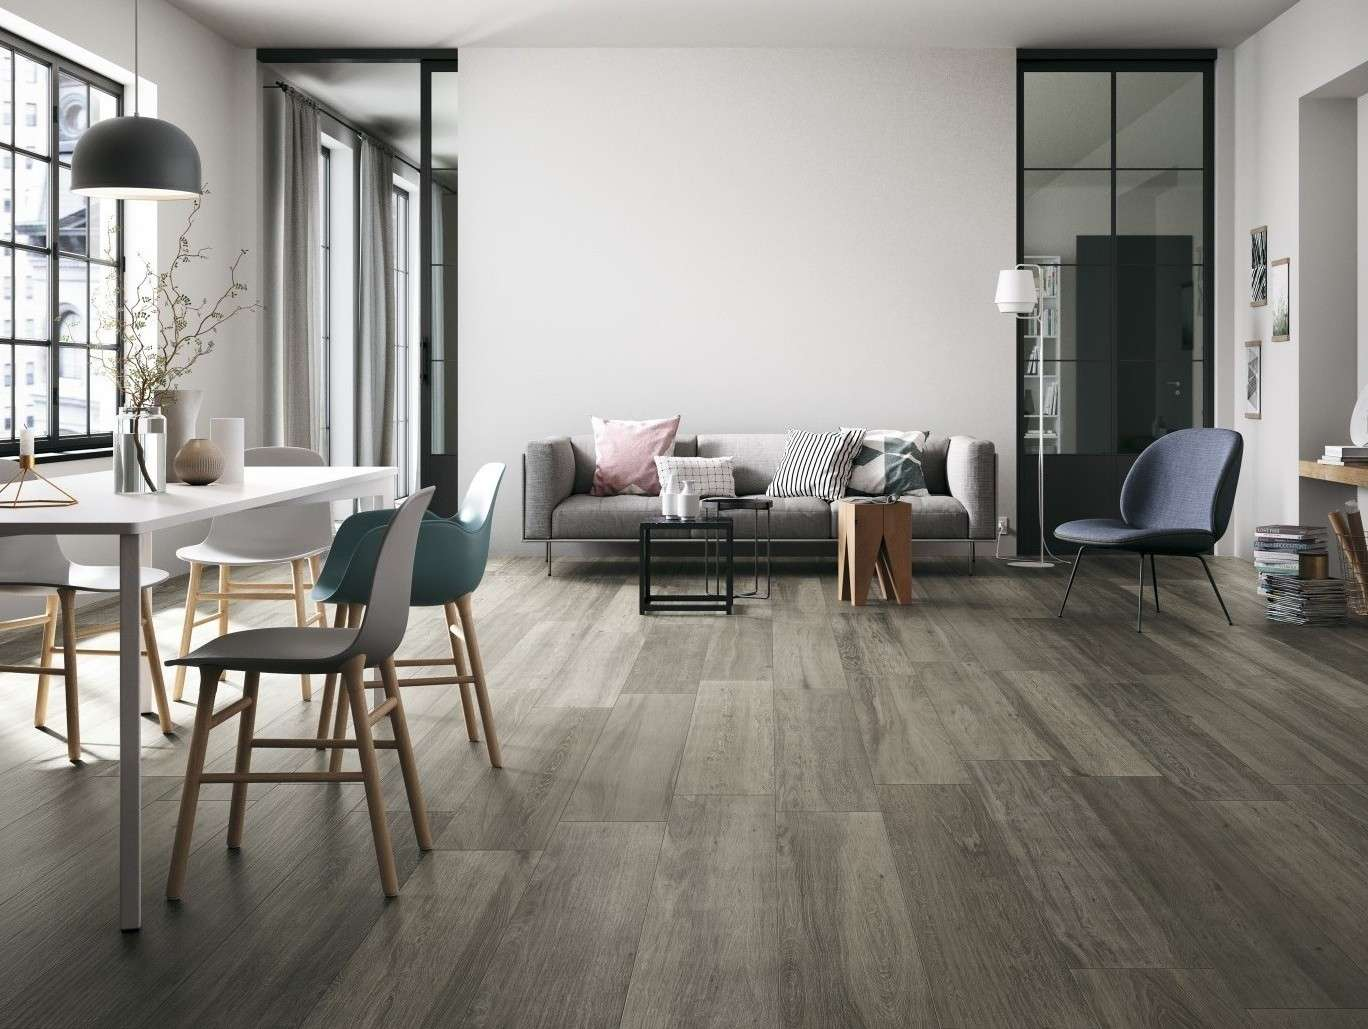 Bark Nebbia 225×900 (Also available in 75×300, perfect for patterned floors)